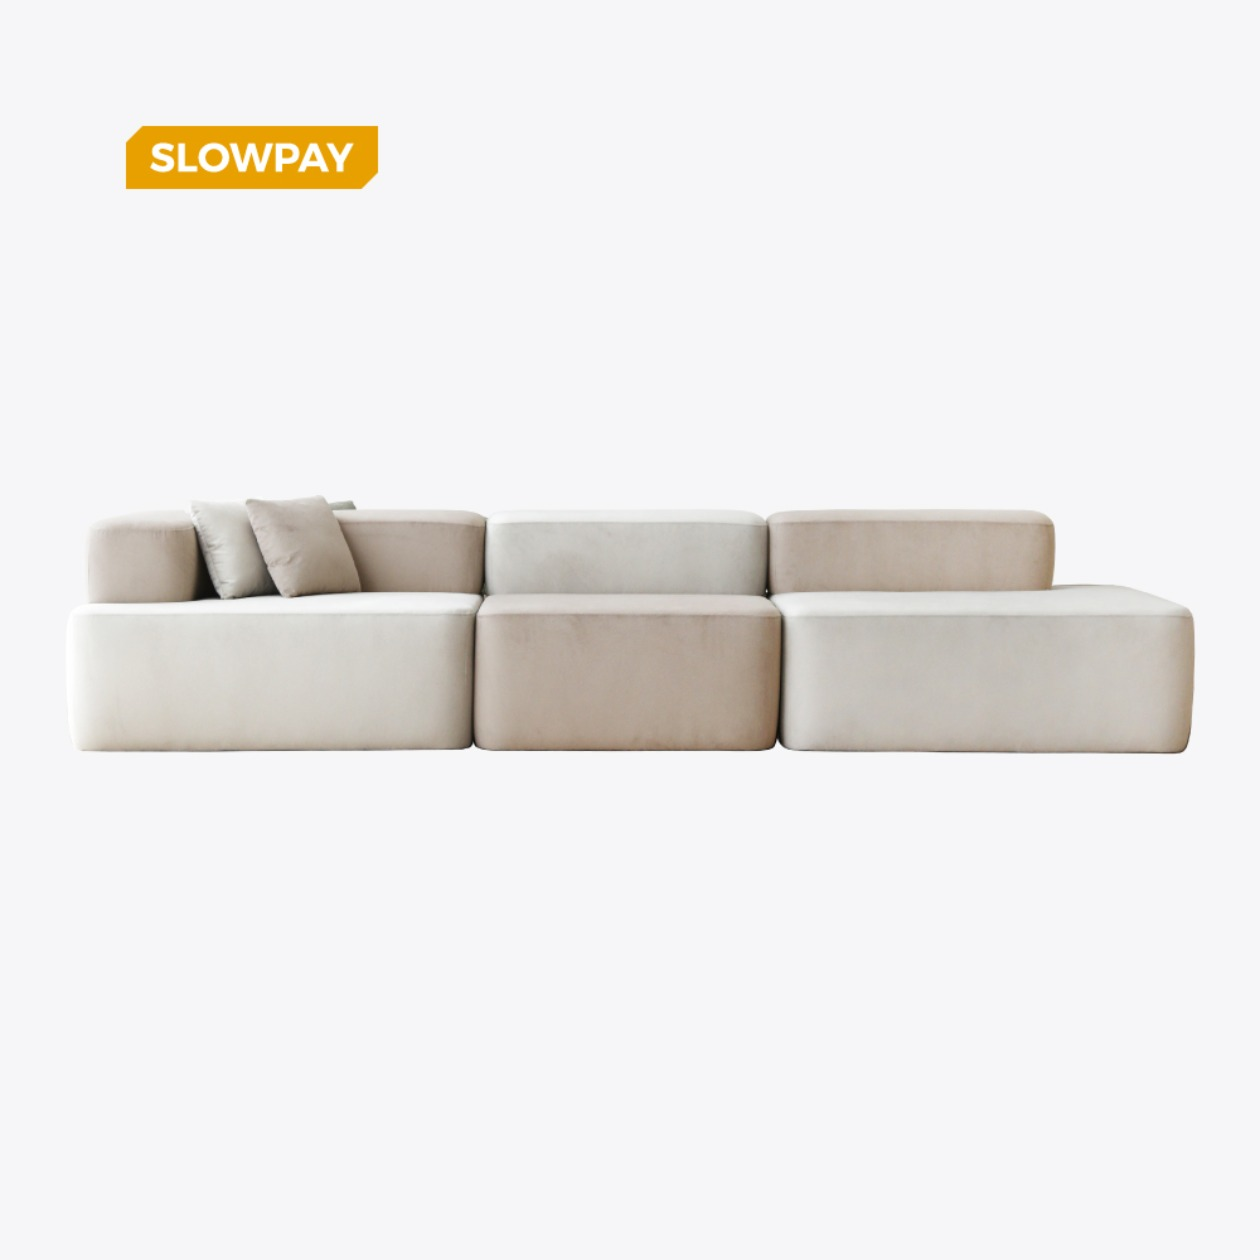 [SLOW PAY] ABLE SOFA A1+B+C